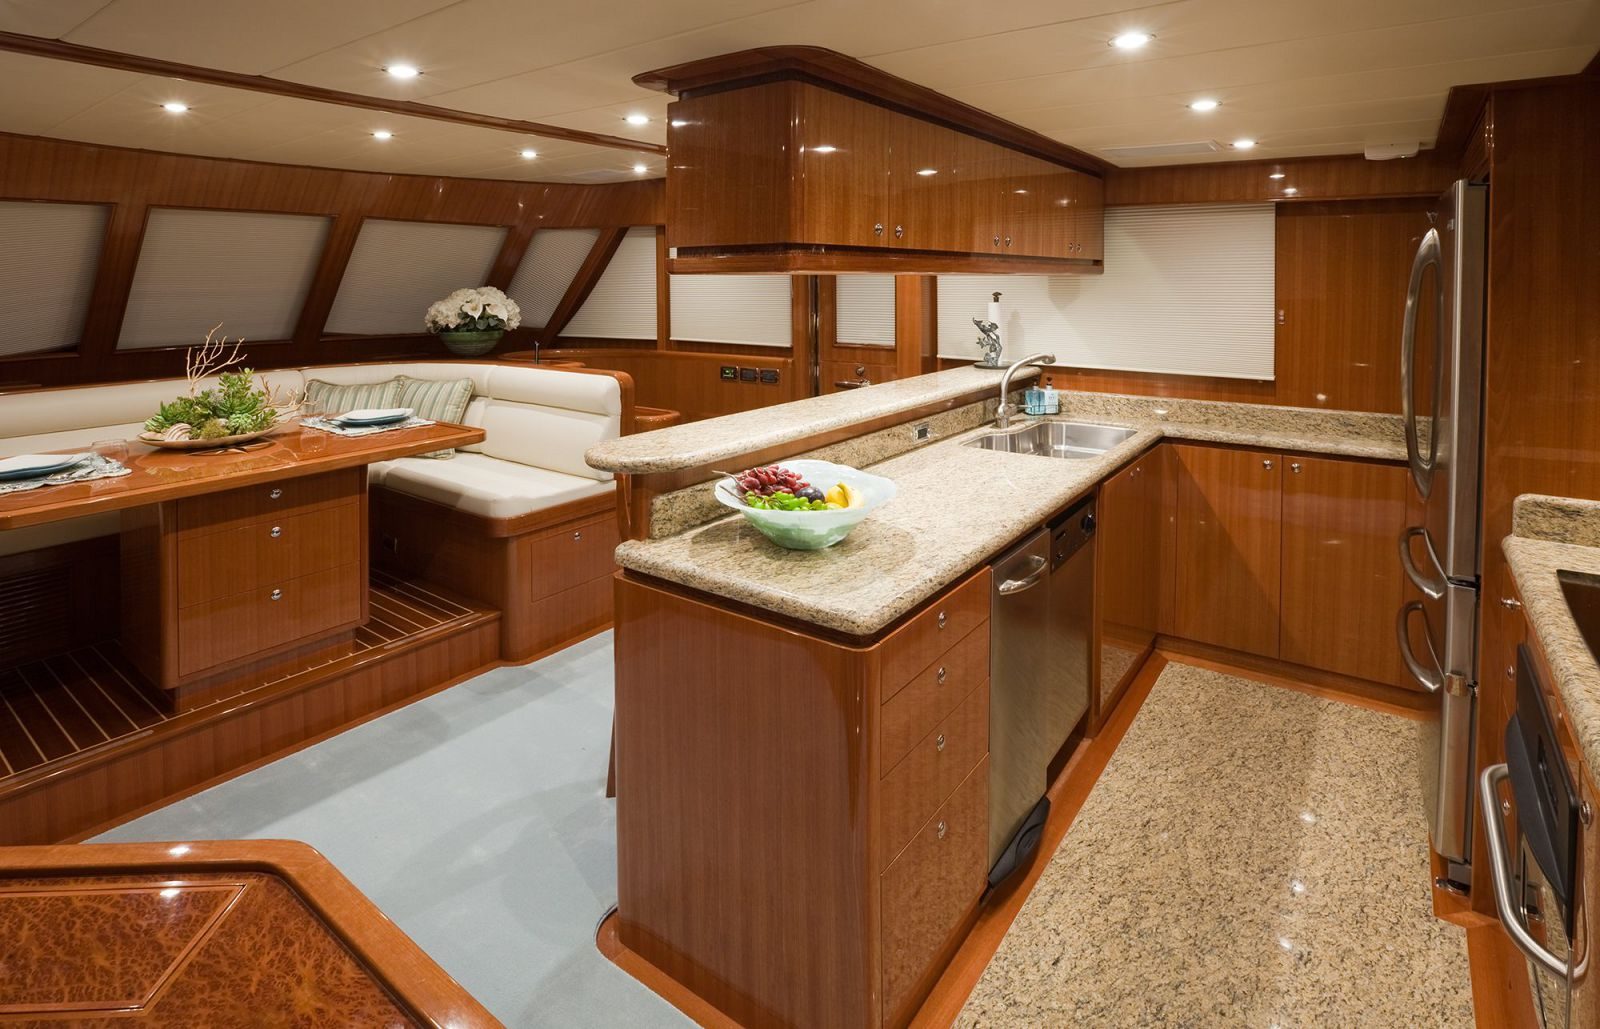 Galley - Endurance 600 Yacht